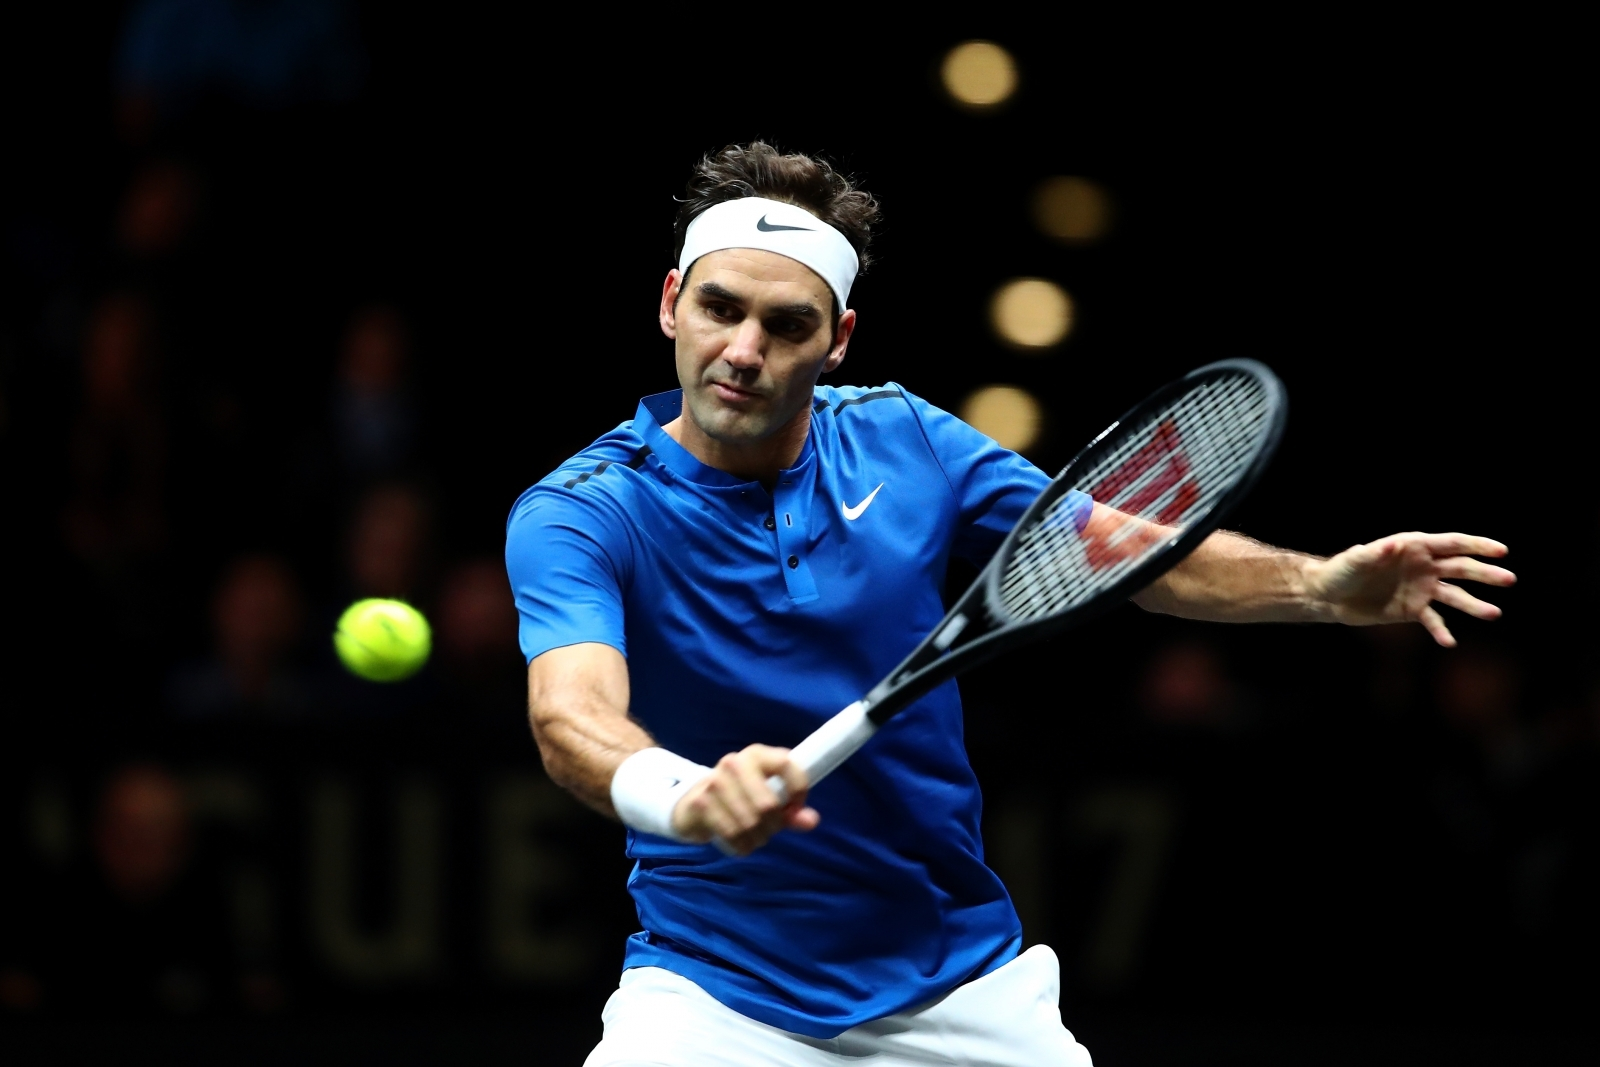 Roger Federer Picture: Roger Federer On Mentality Change In 2017 And Injury To